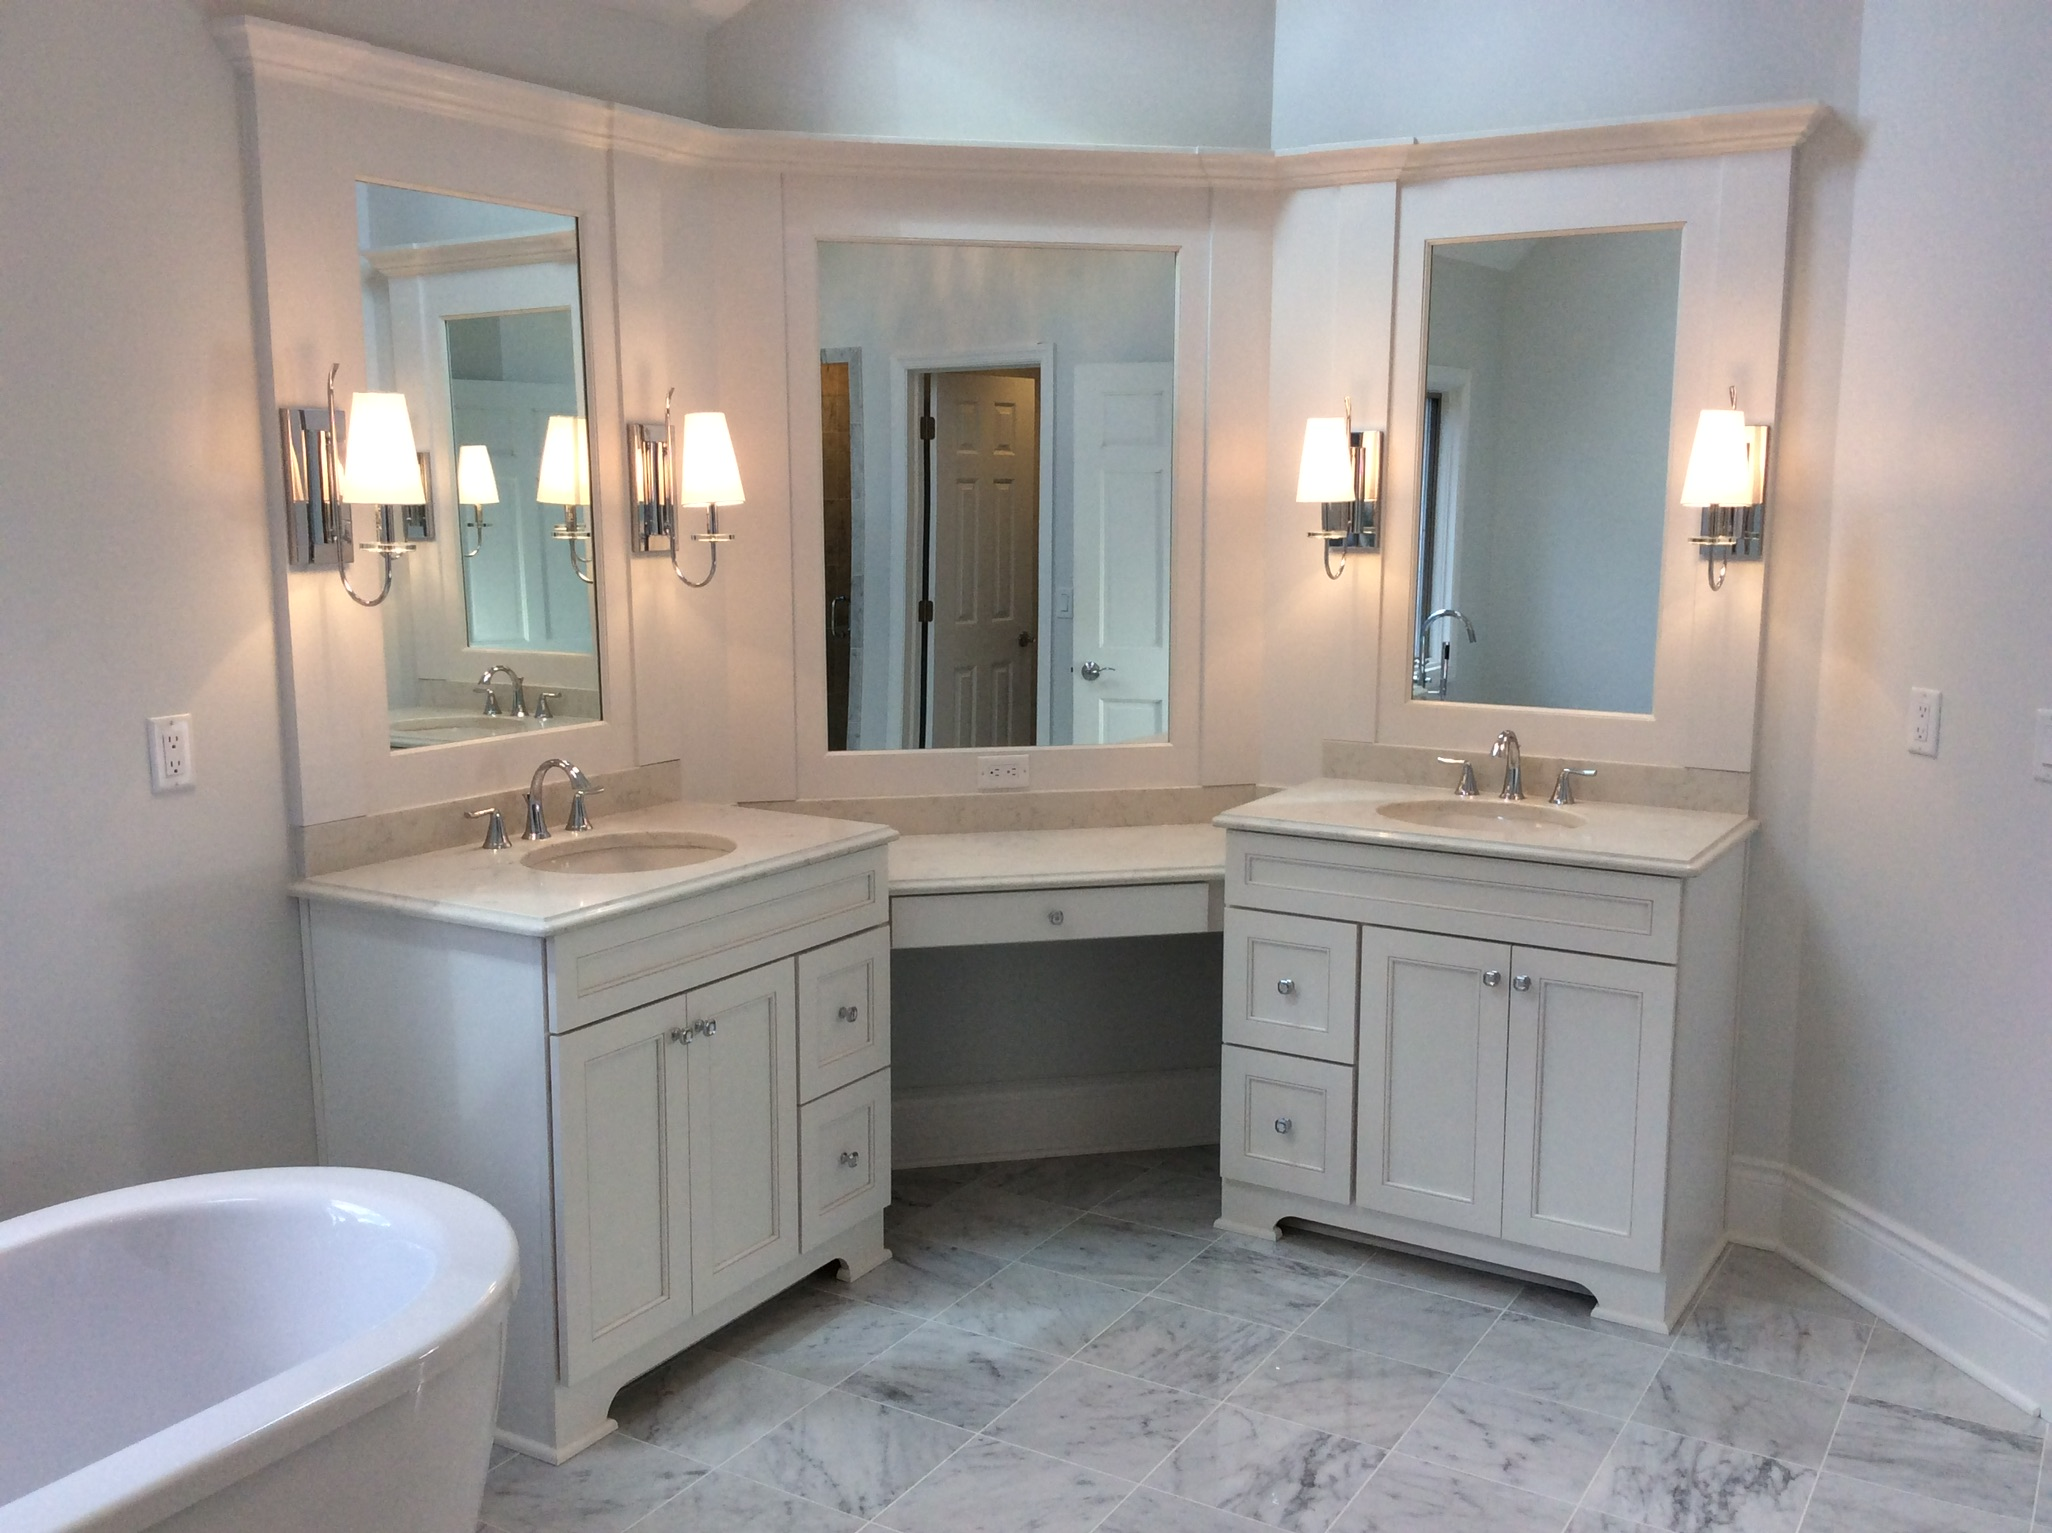 Nelson Kitchen And Bath Mars PA Serving Pittsburgh - Bathroom remodeling wexford pa